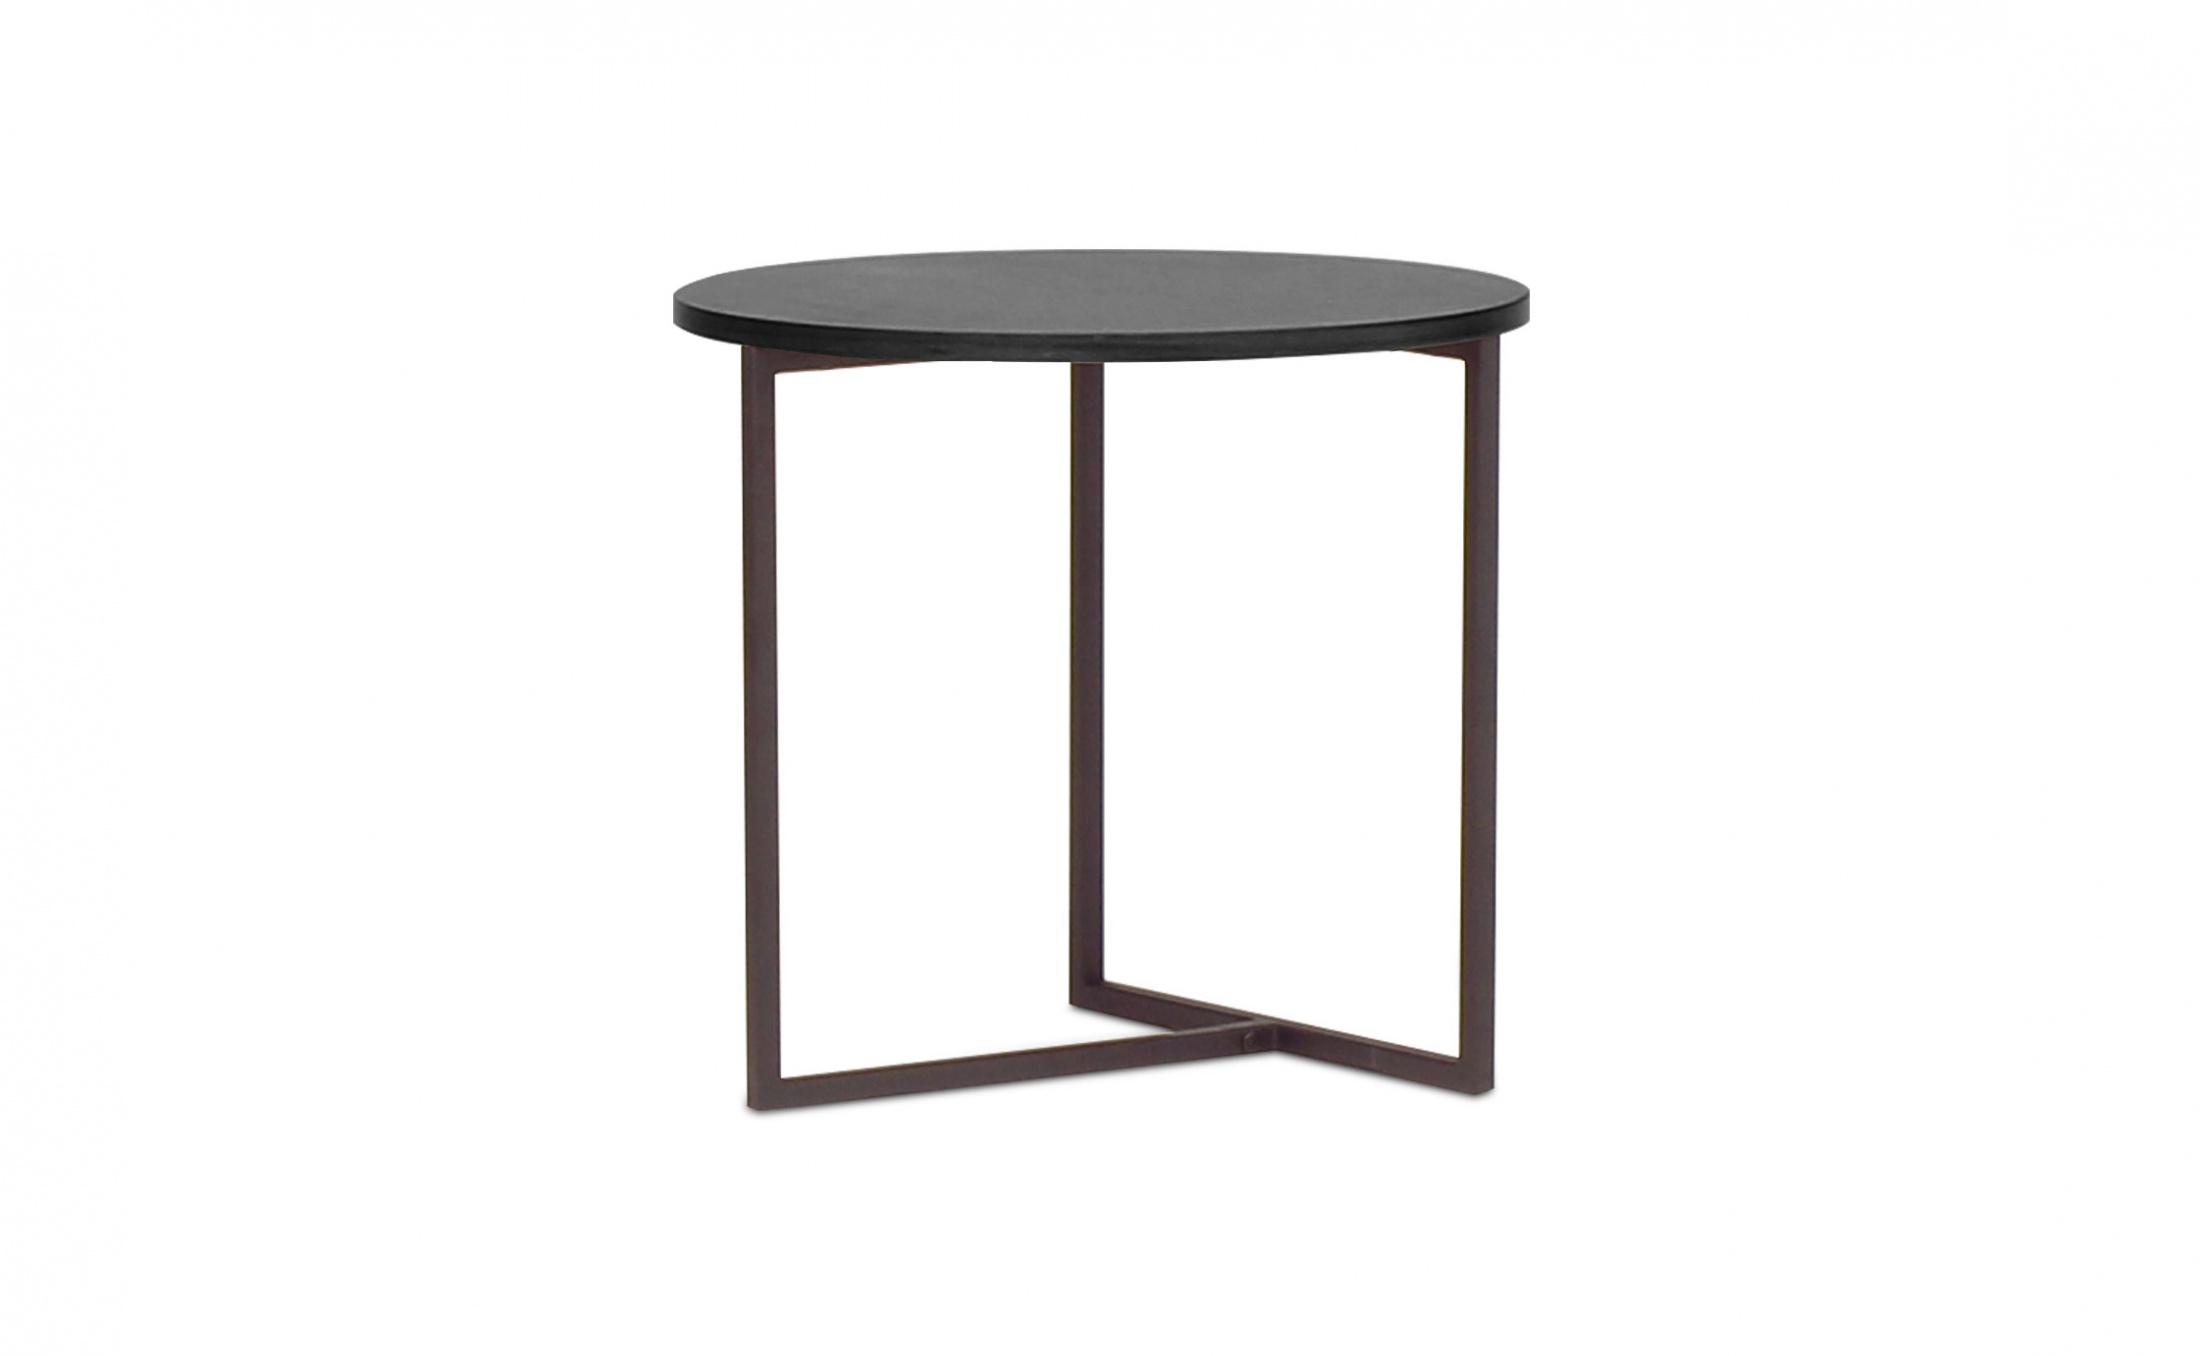 Small Round Lace Tablecloths The Super Free Target Black Side Table Simple Inspiration Gorgeous Metal And